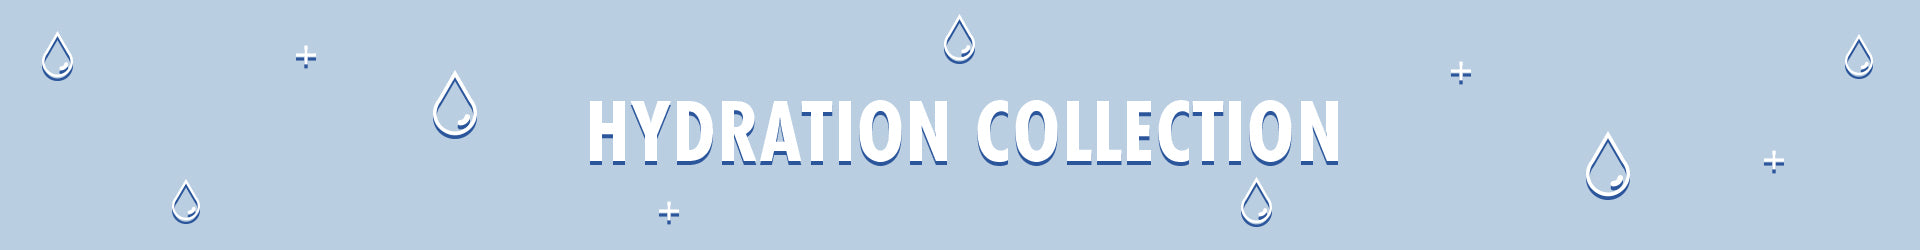 Hydration Collection